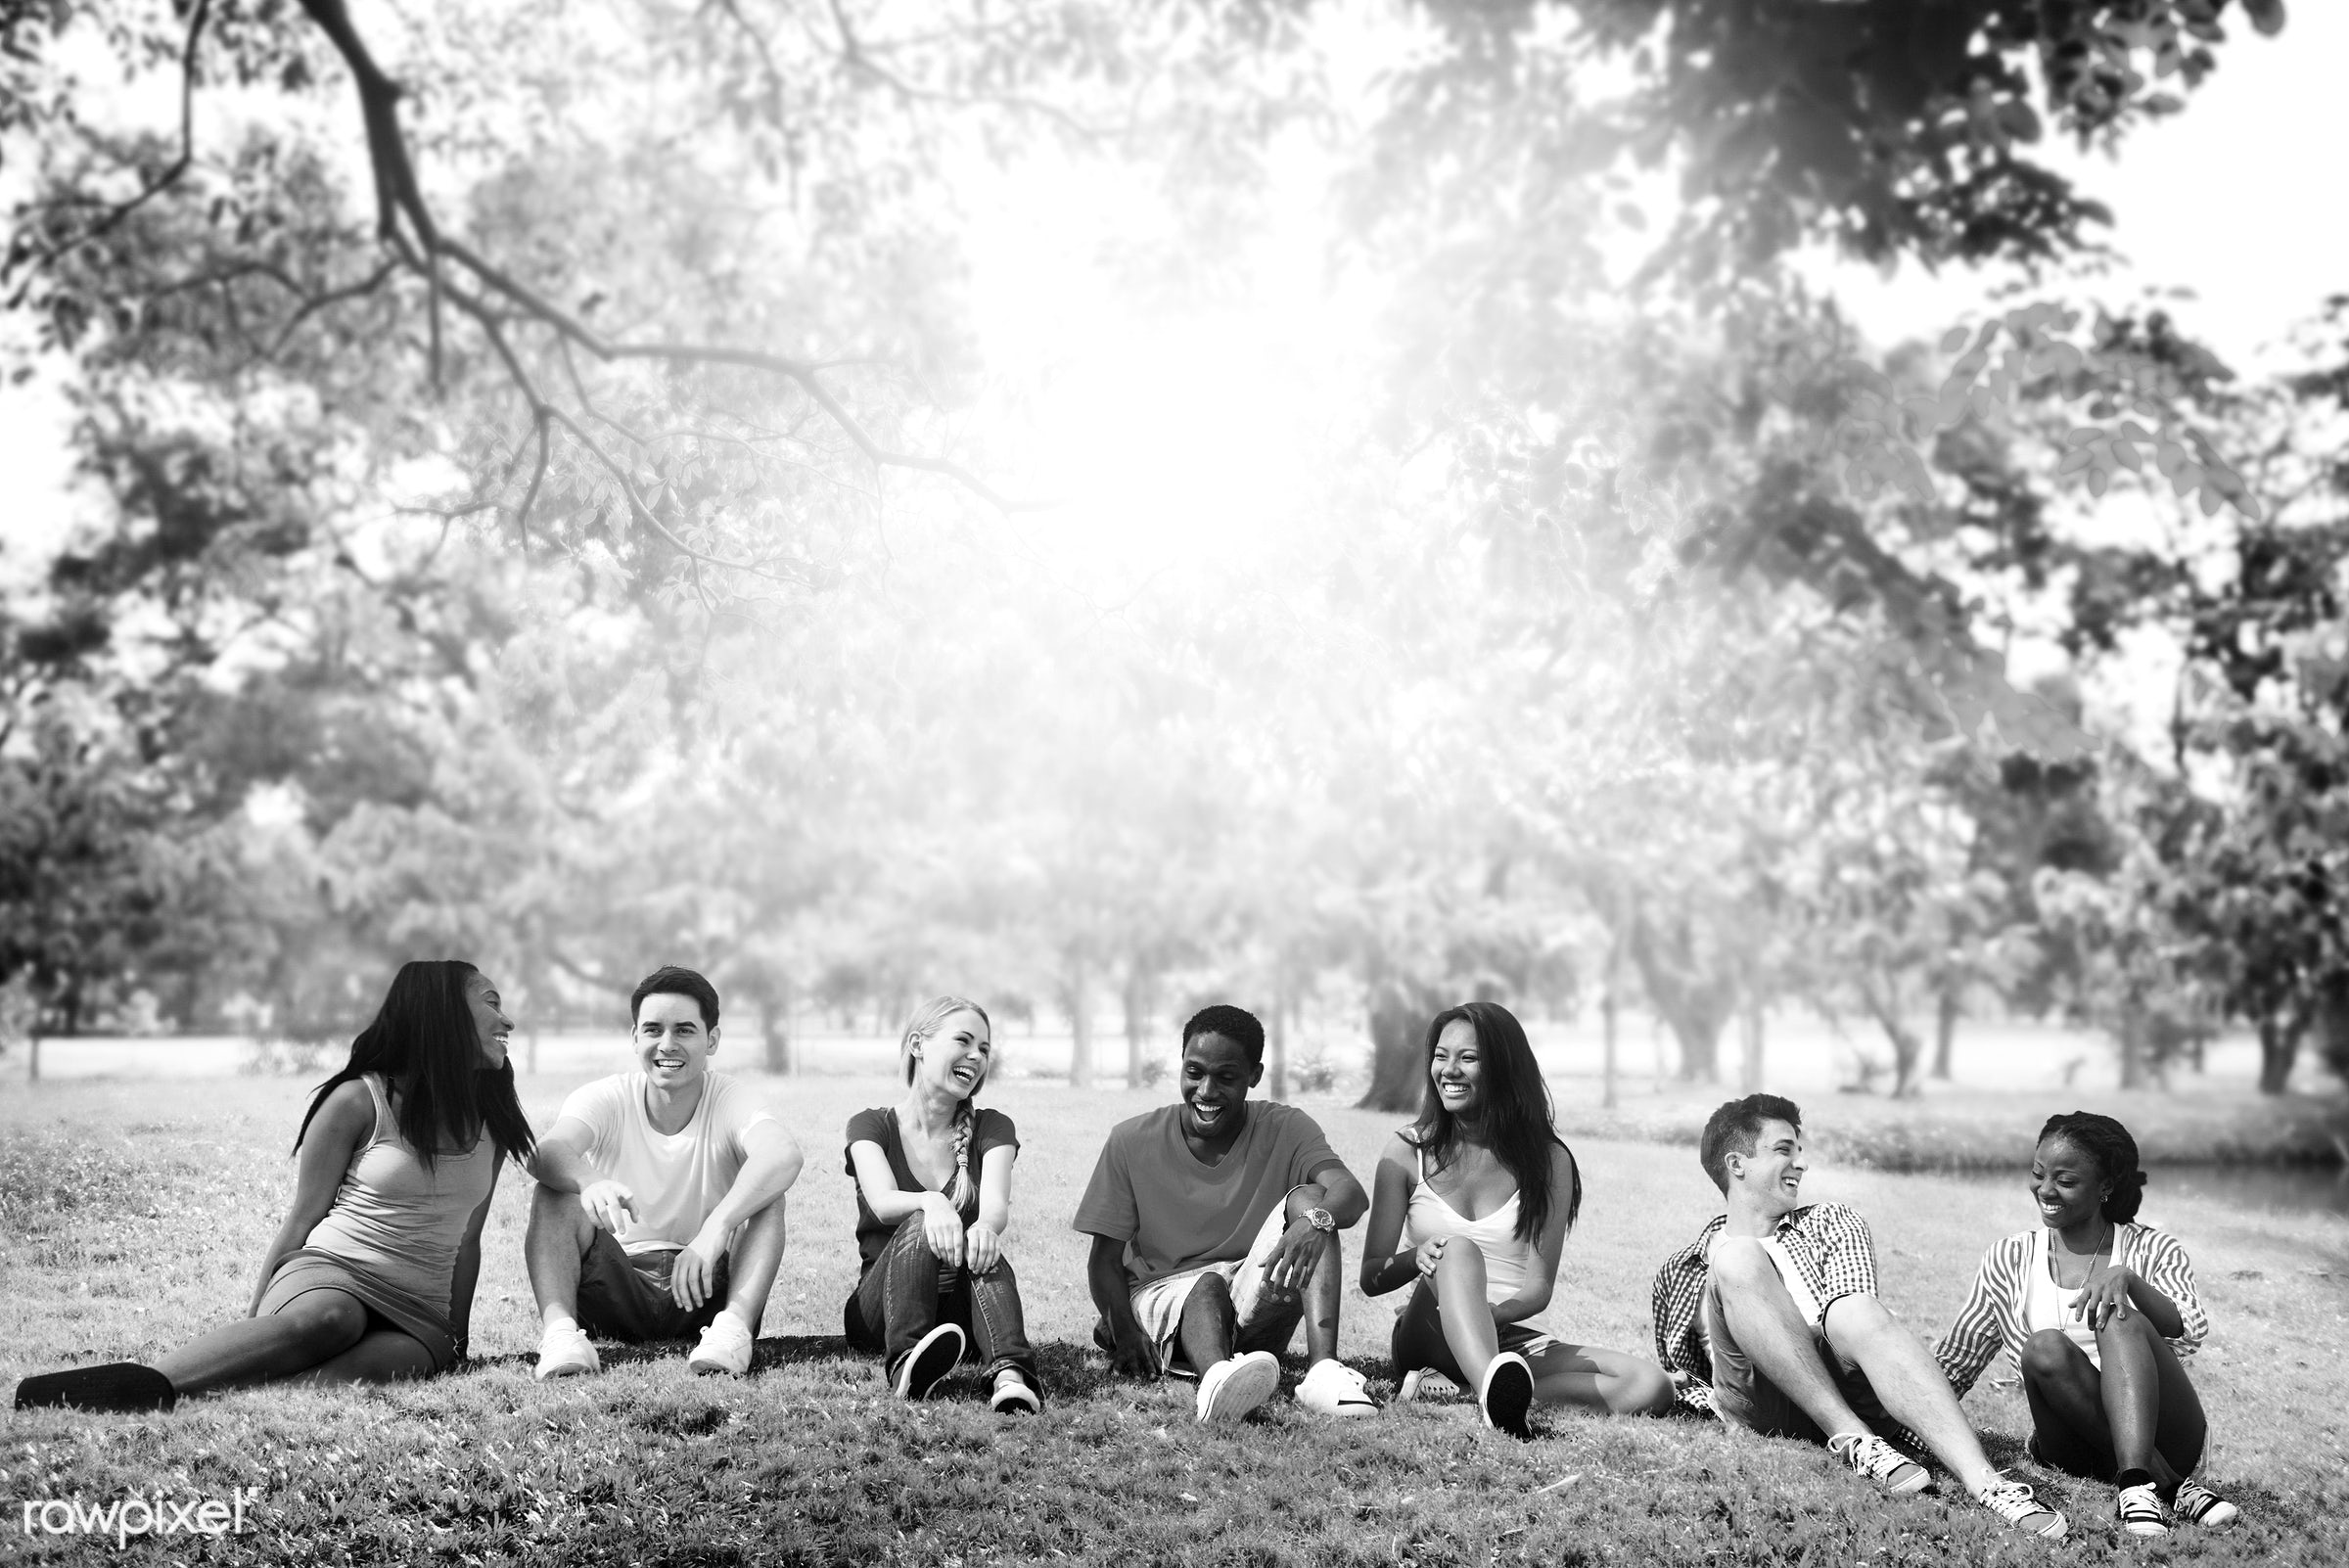 adult, african descent, amity, asian ethnicity, campus, cheerful, conversation, day, diverse, diversity, enjoying, female,...